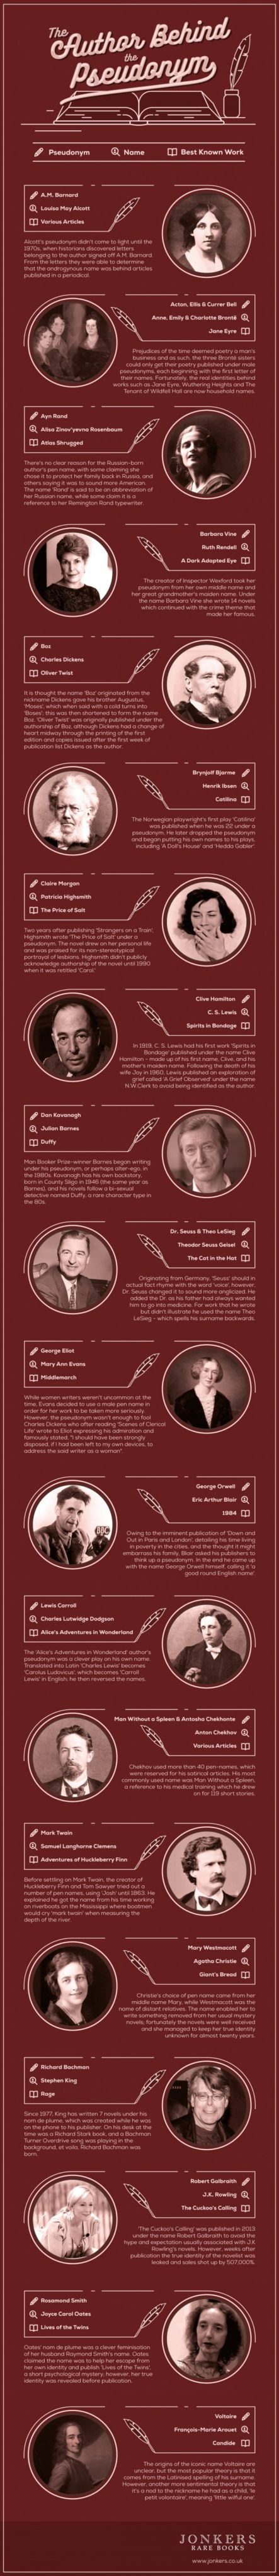 Infographic: The Author Behind the Pseudonym Infographic